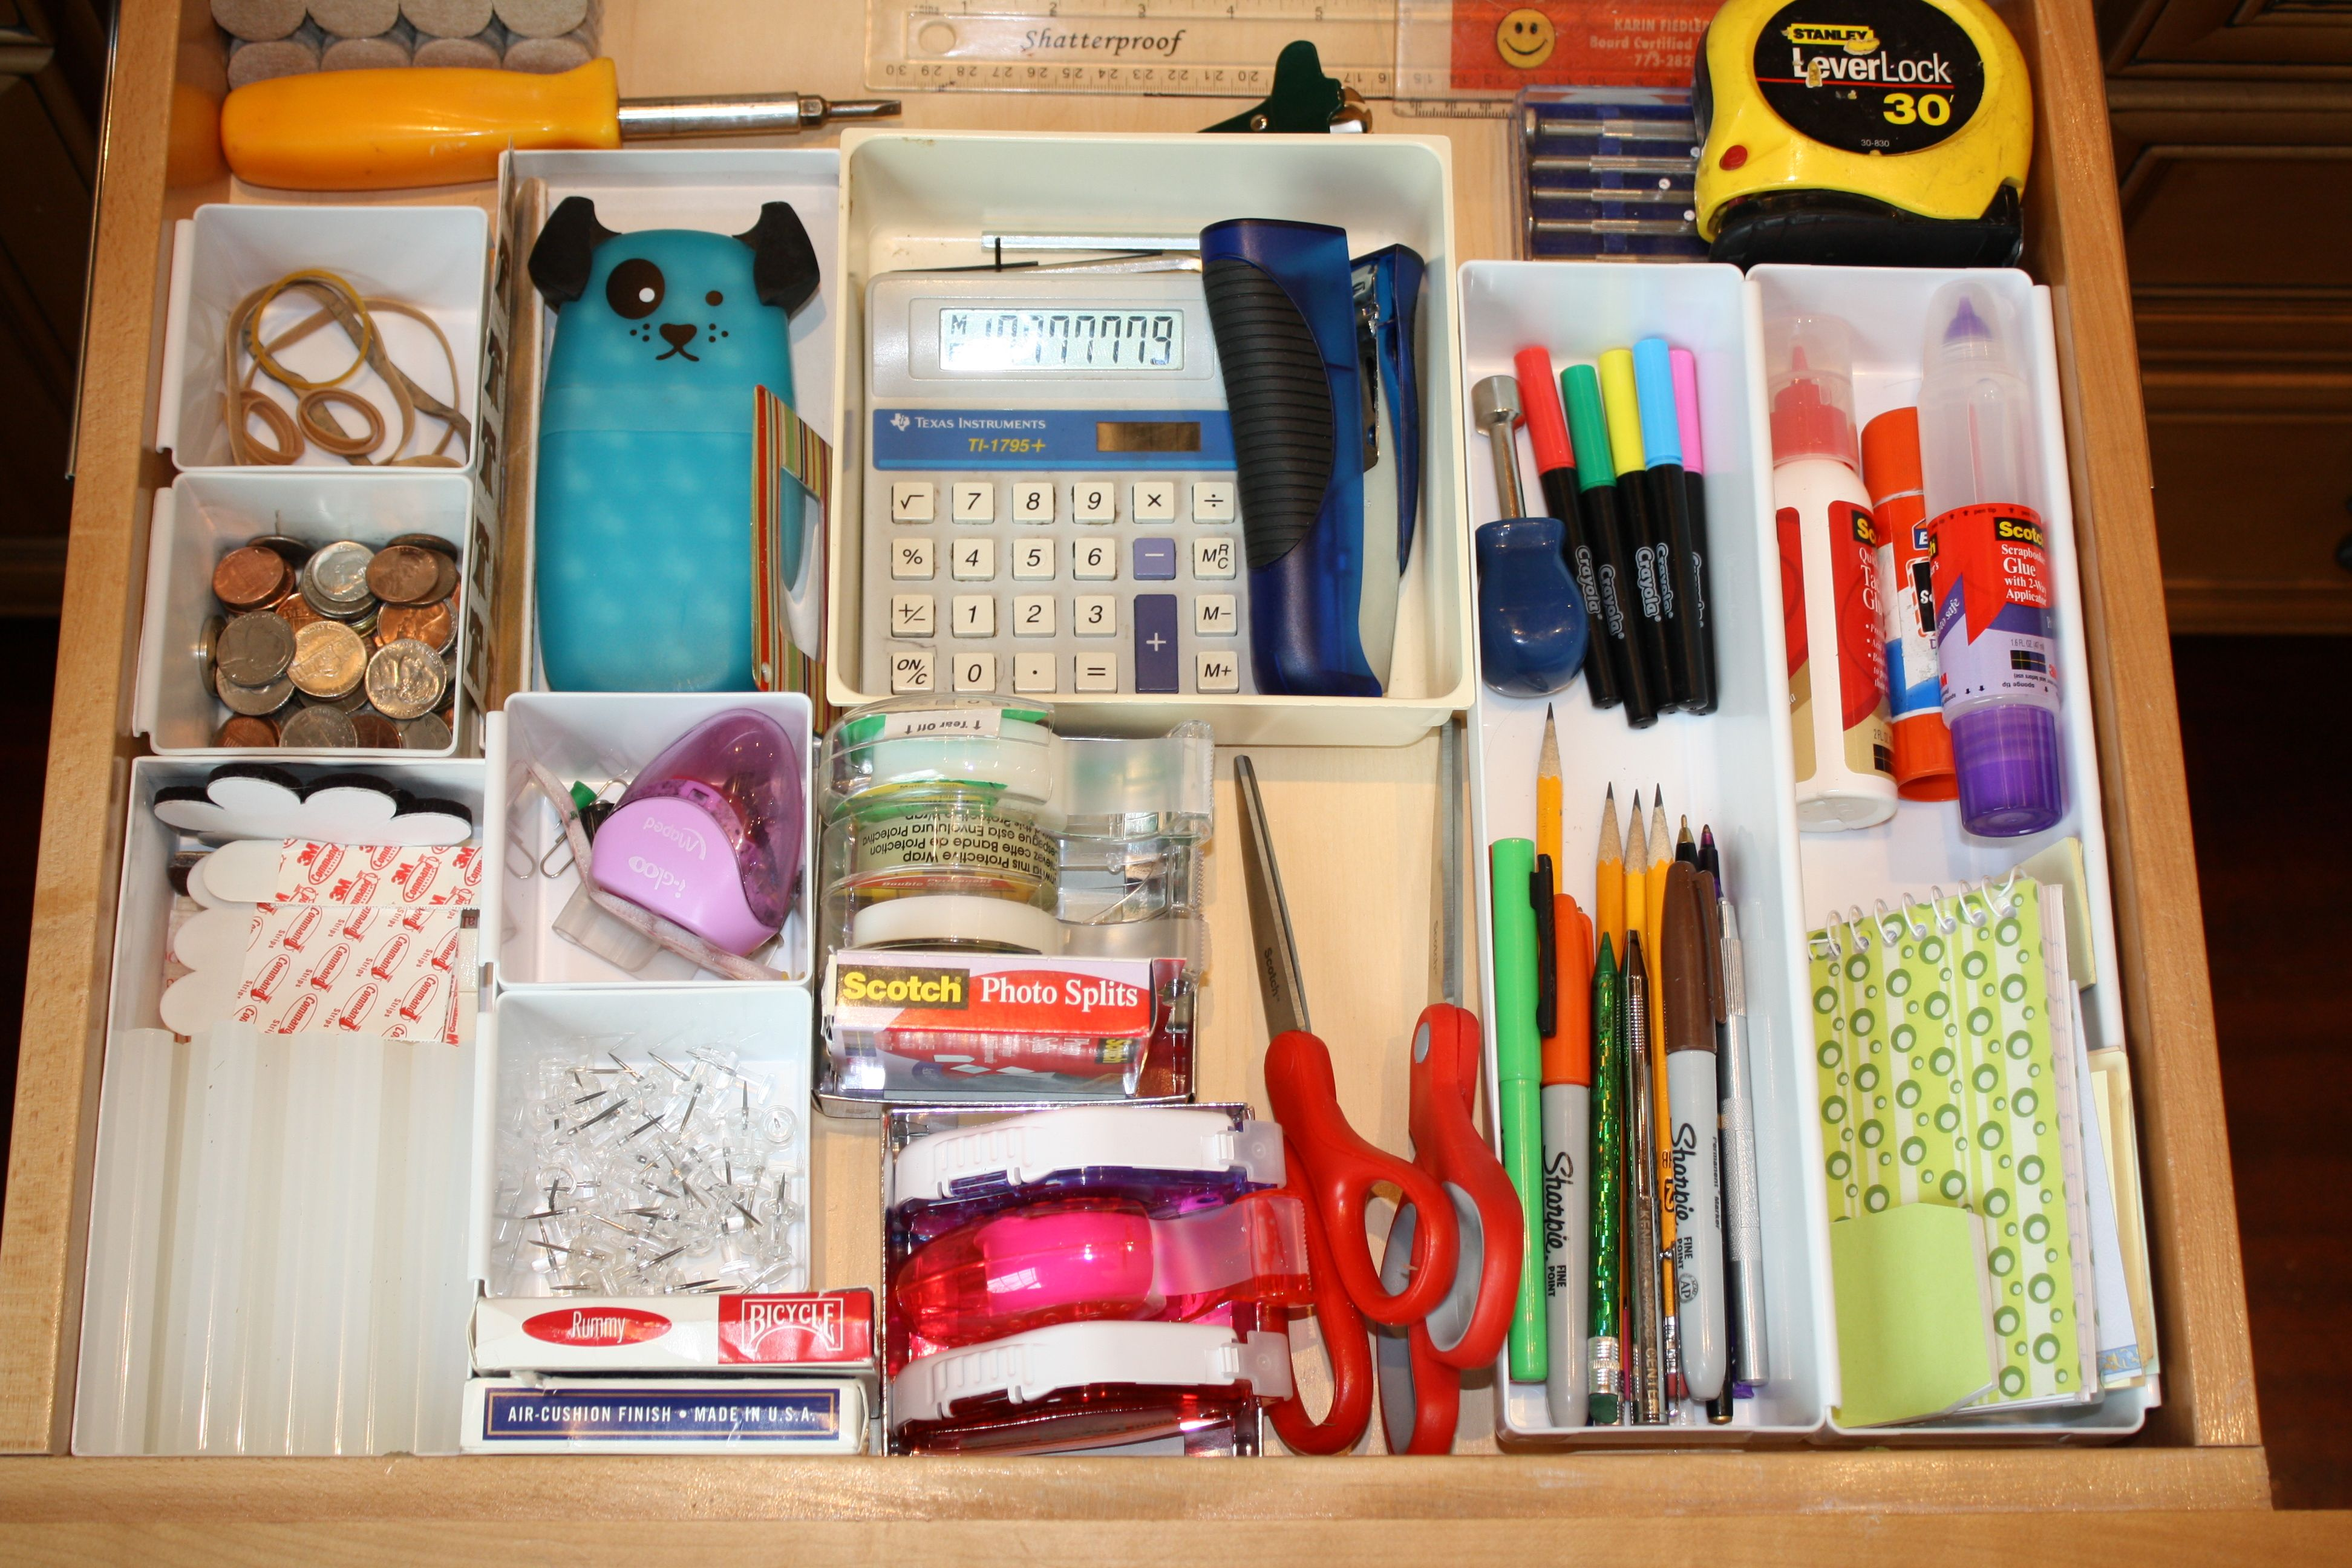 Junk Drawer Makeover Get Organized With These Quick Tips To Get That Messy Junk Drawer